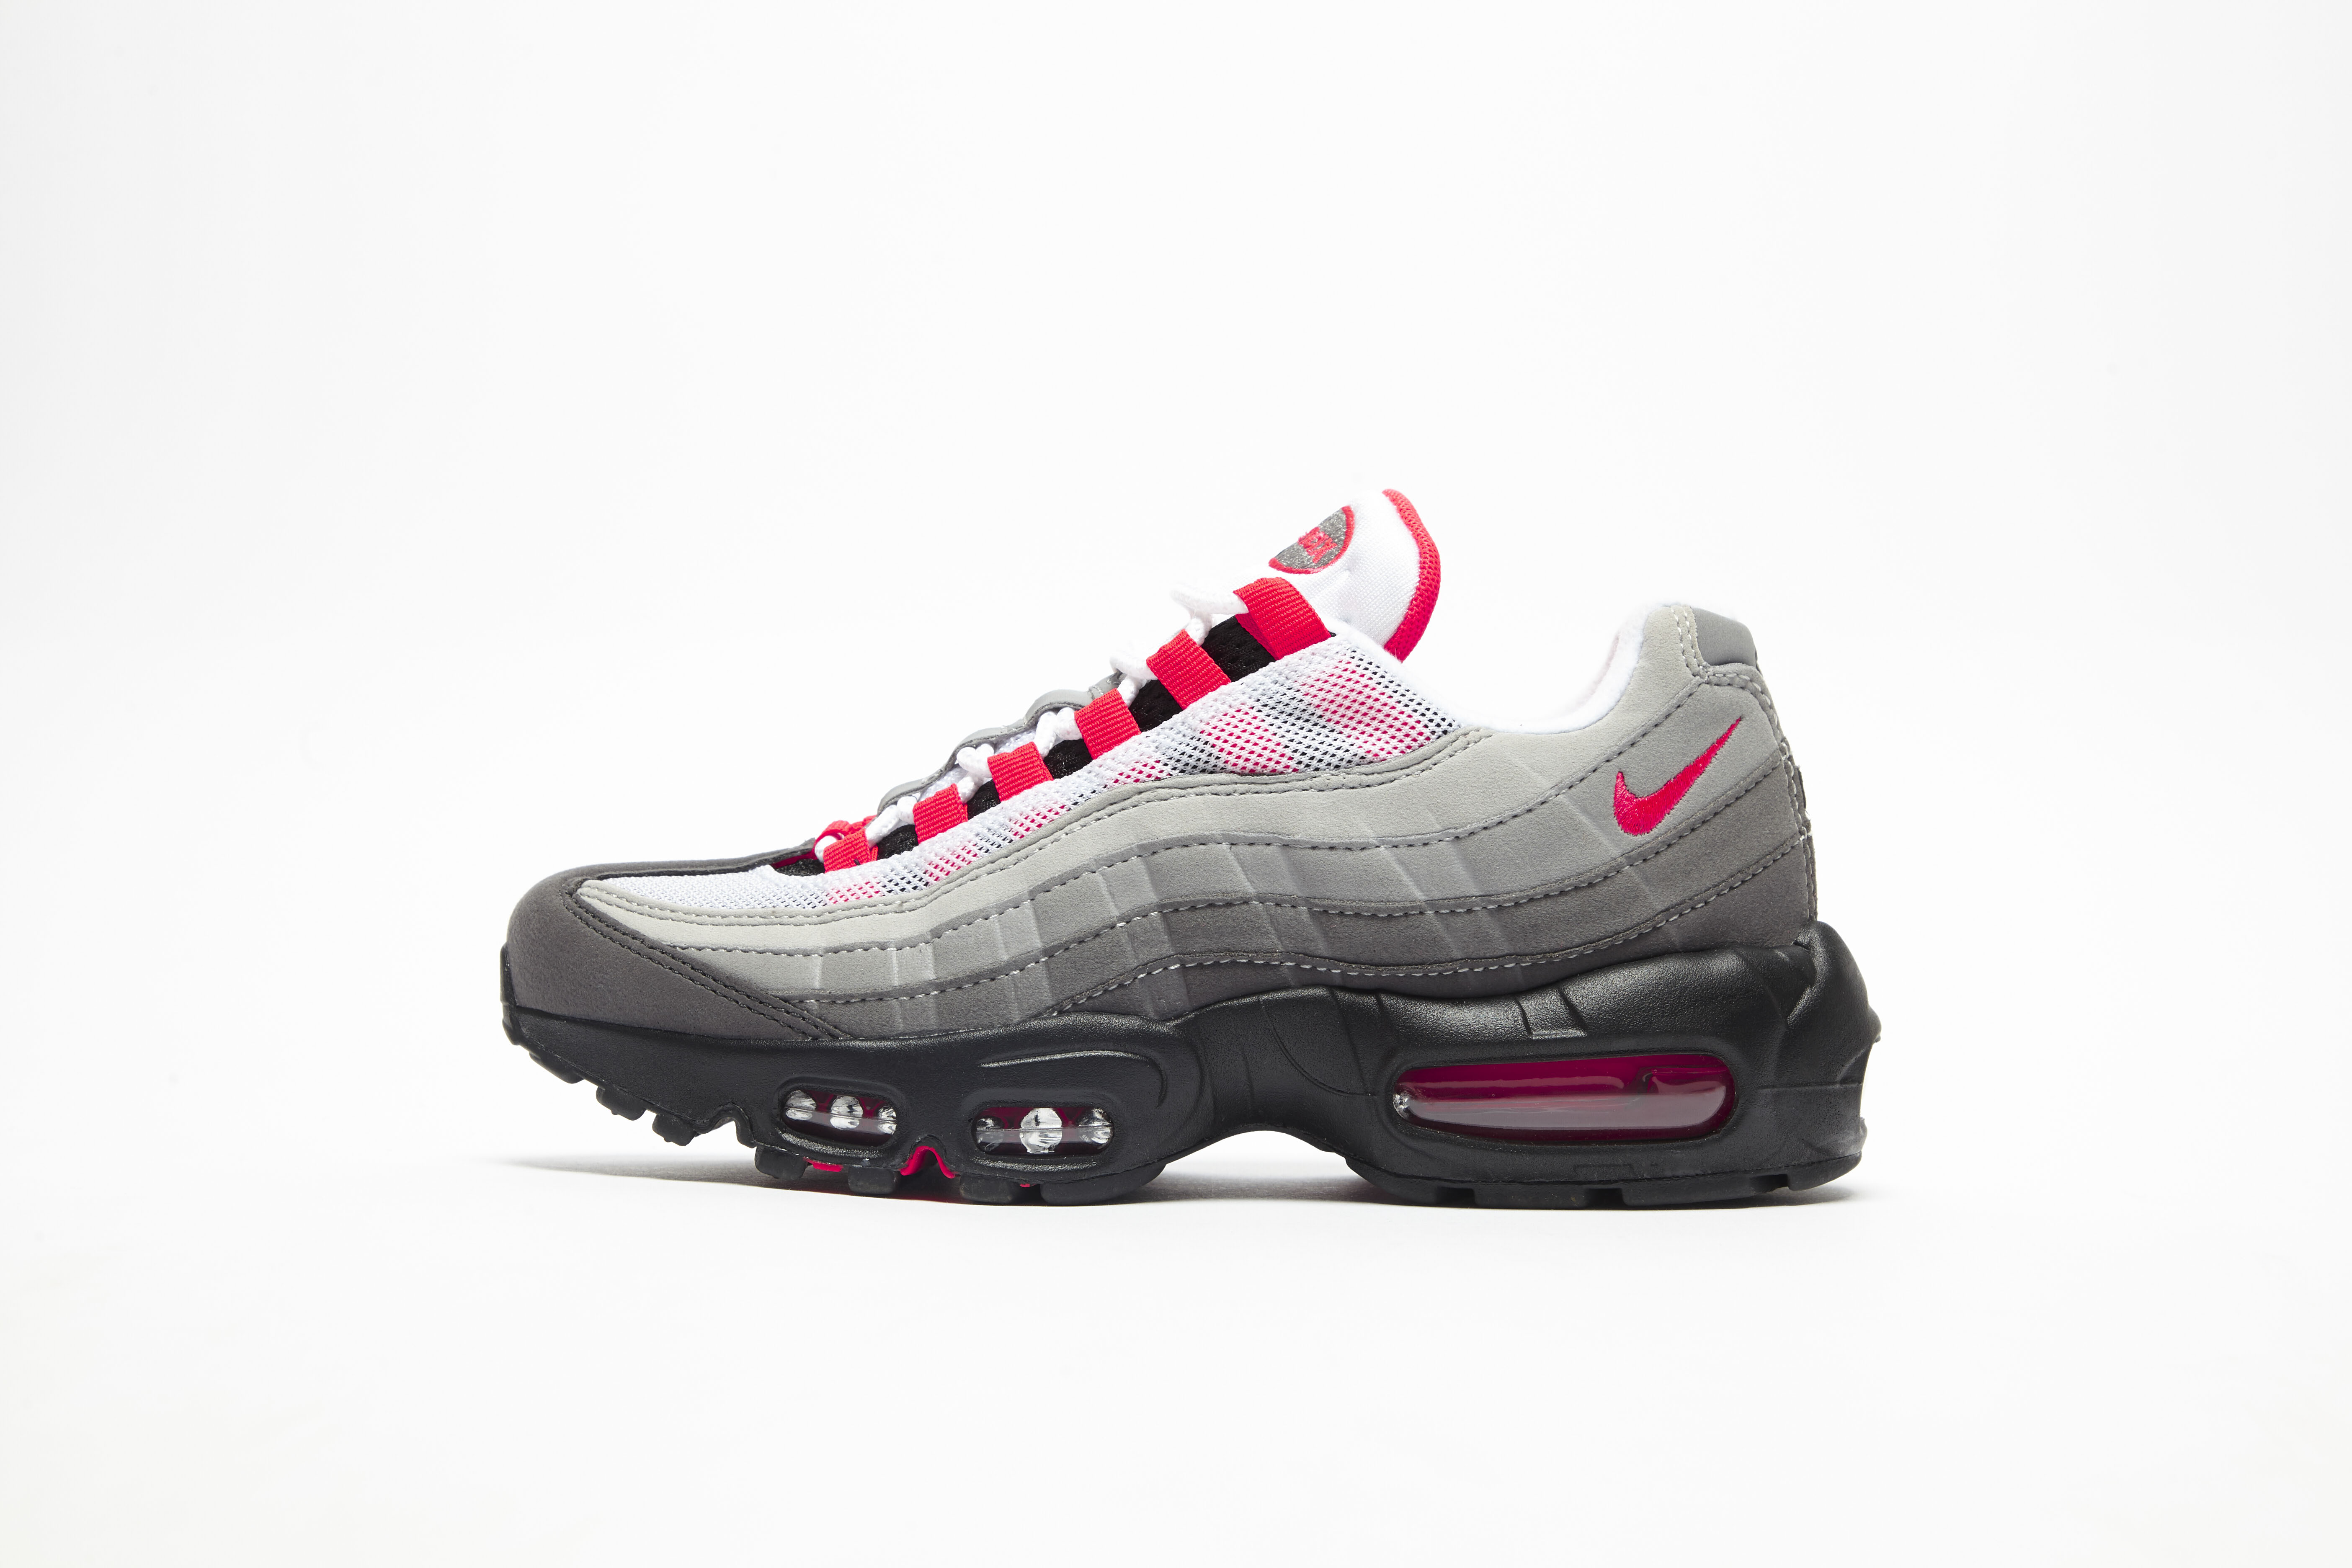 competitive price b63ea 938ec Nike Air Max 95 OG 'Solar Red' - size? blog